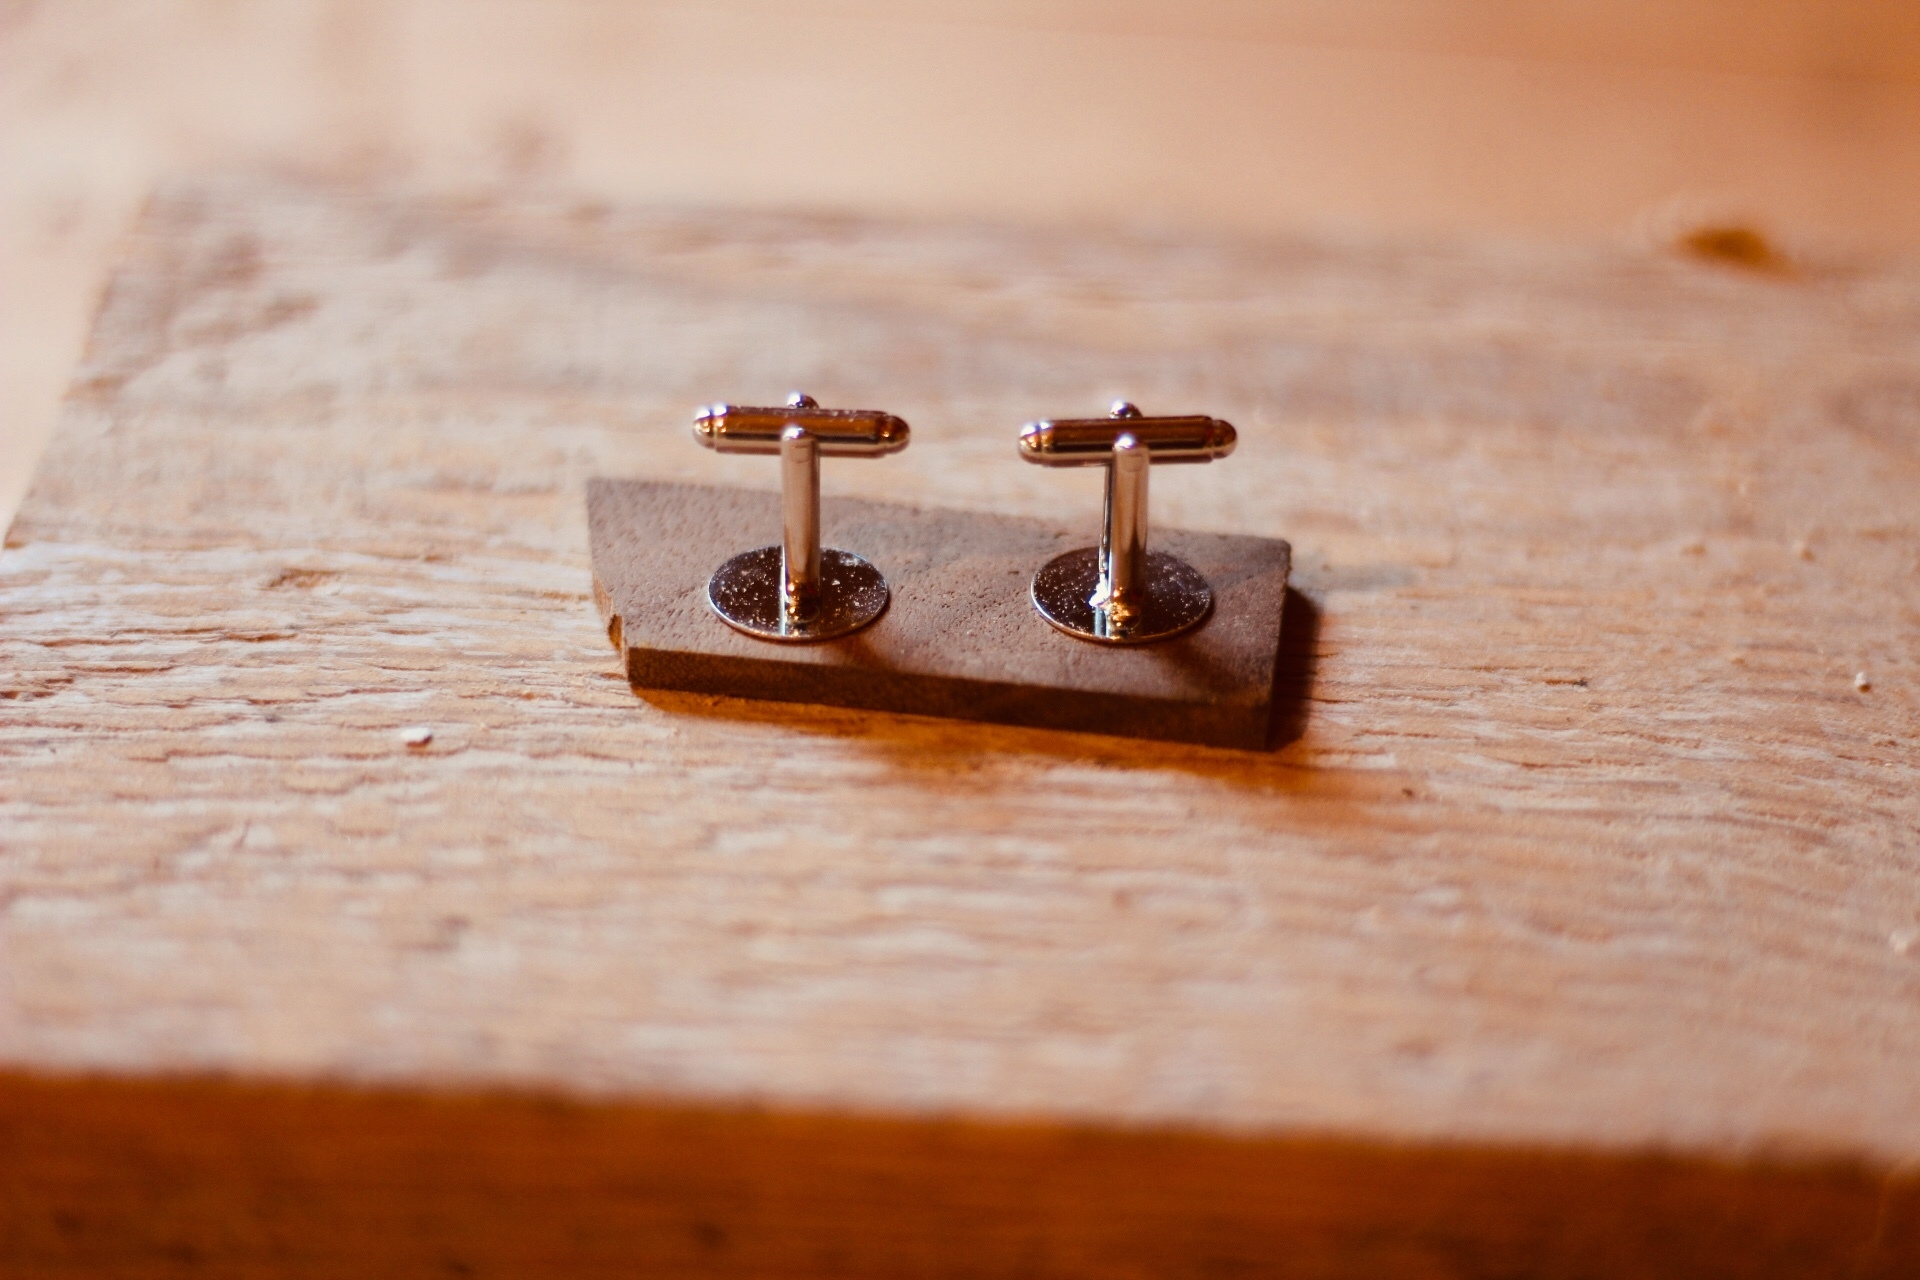 wooden custom cufflinks - step 1